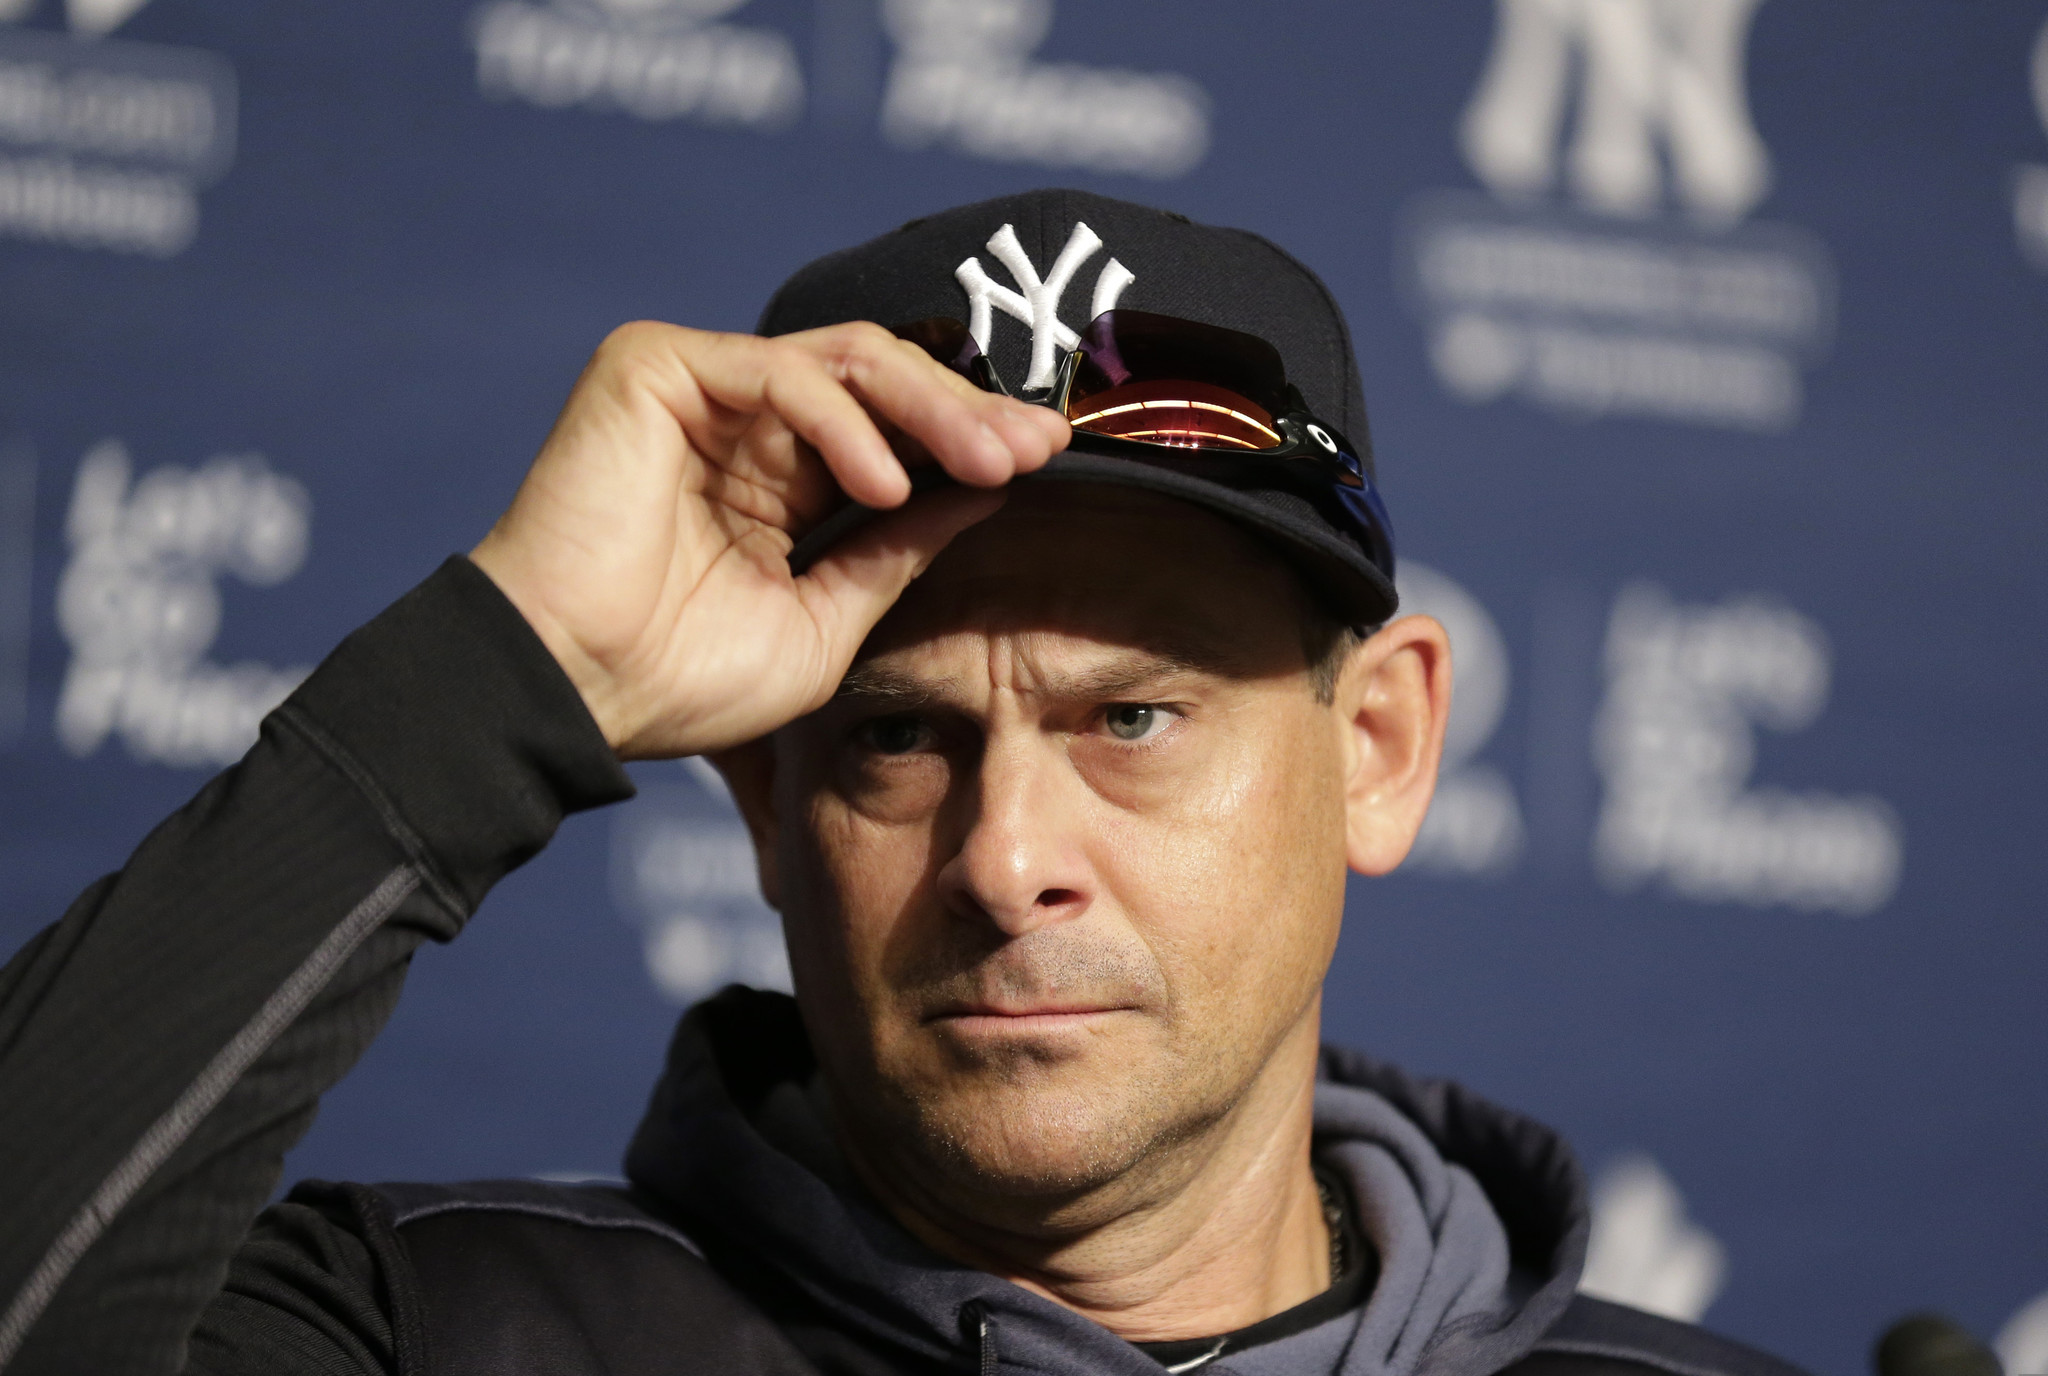 Yankees manager Aaron Boone calls the Astros cheating allegations 'eye-popping'